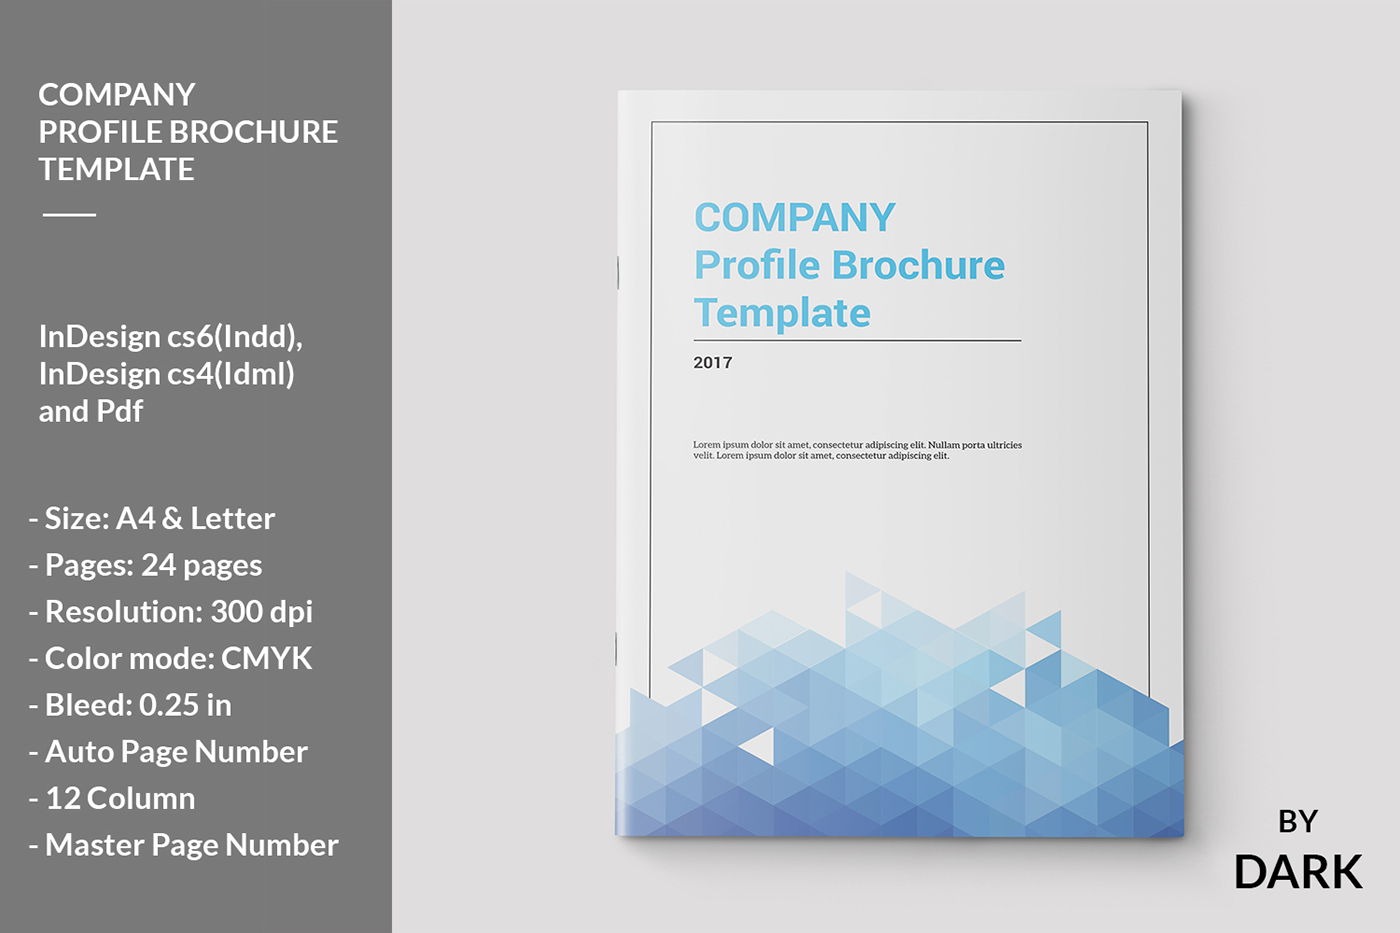 Company Profile Brochure Template On Behance - Company profile brochure template